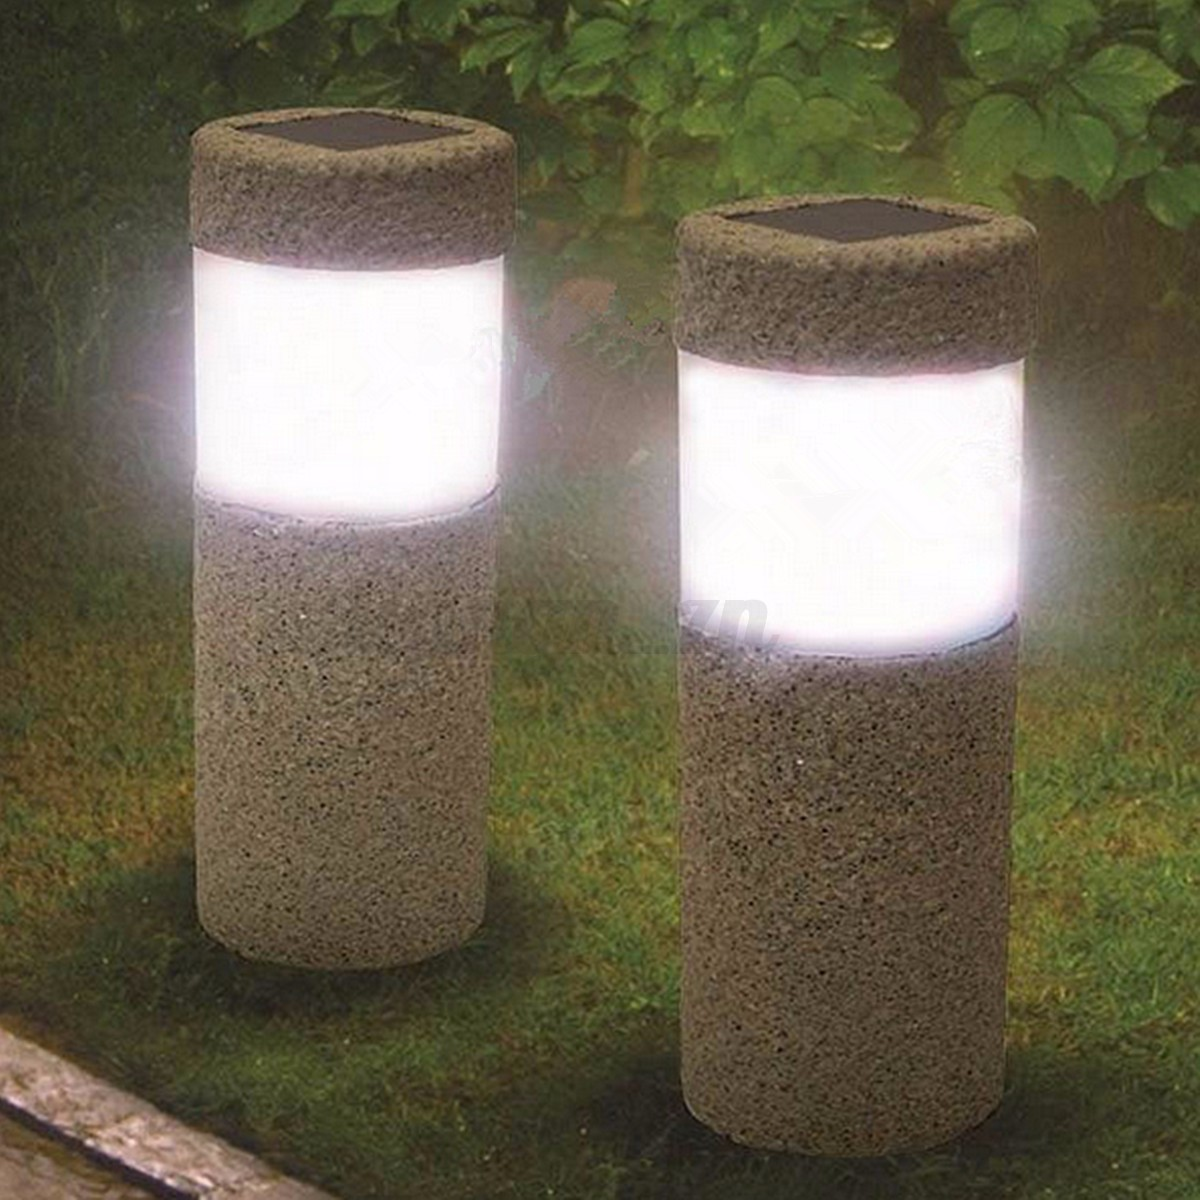 led lampe de jardin terrasse borne d 39 clairage d 39 ext rieur luminaire solaire ebay. Black Bedroom Furniture Sets. Home Design Ideas